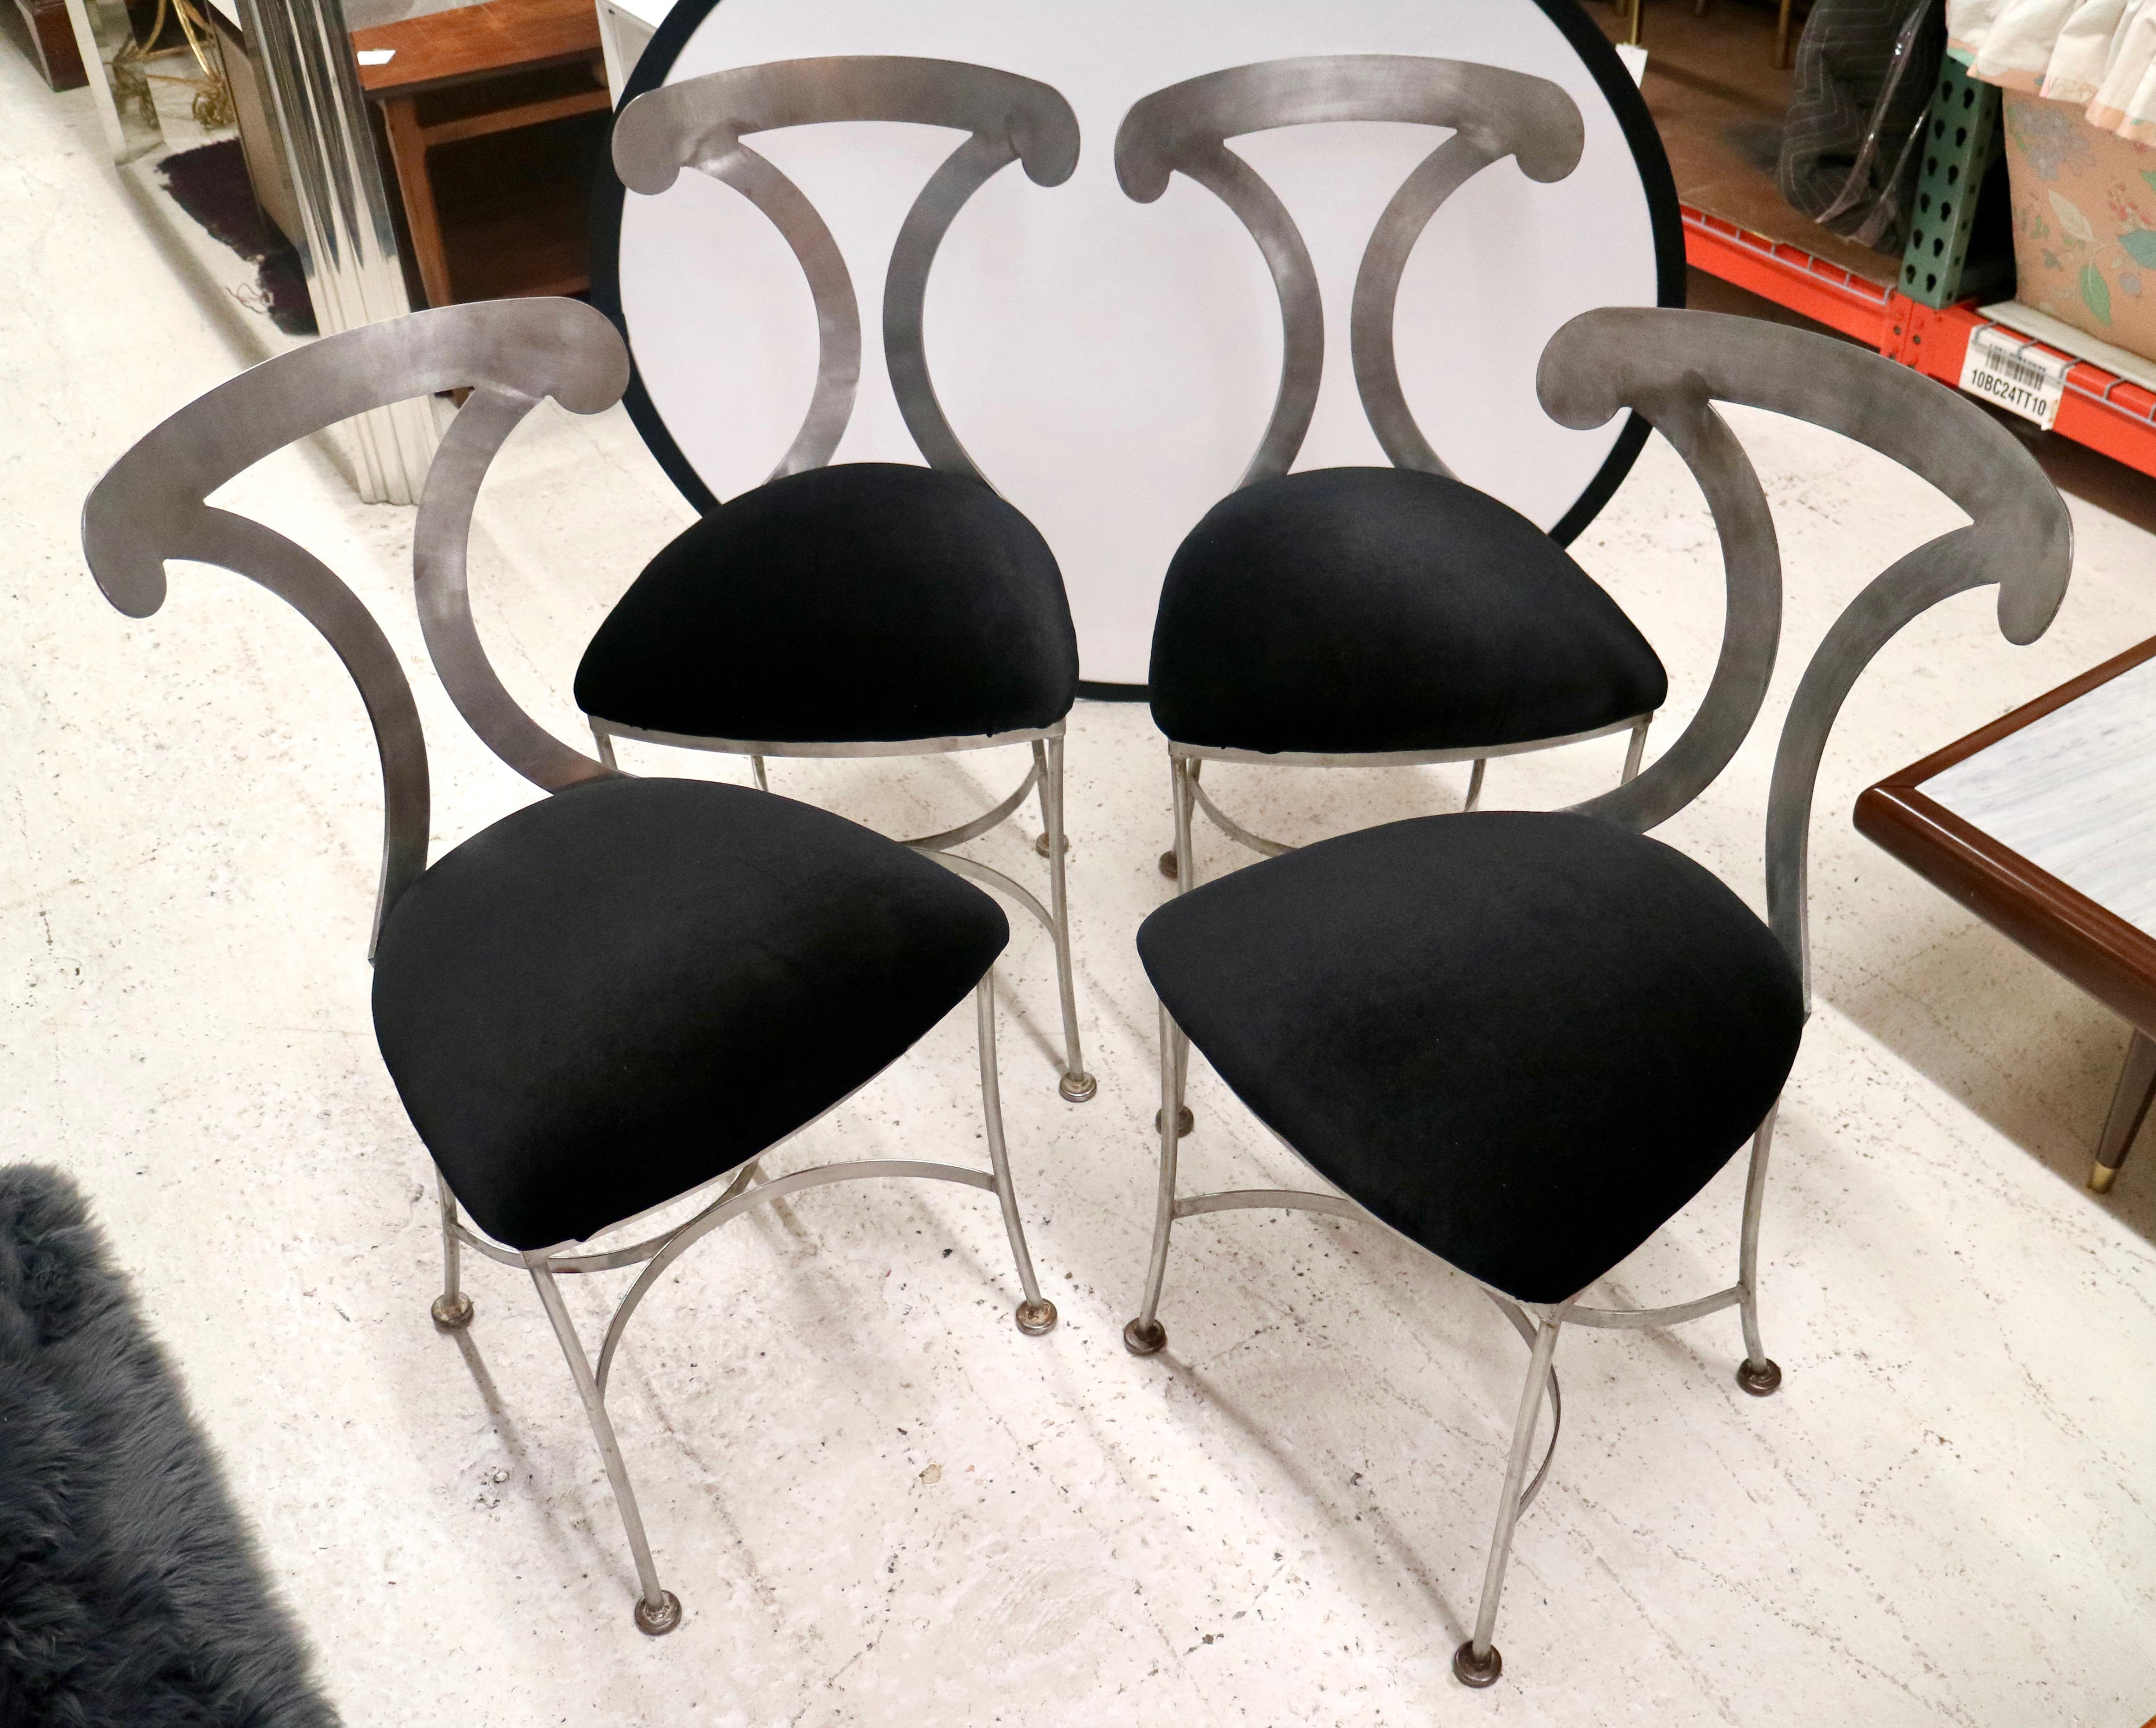 Delightful Shaver Howard Metal Dining Chairs   Set Of 4   Image 11 Of 11